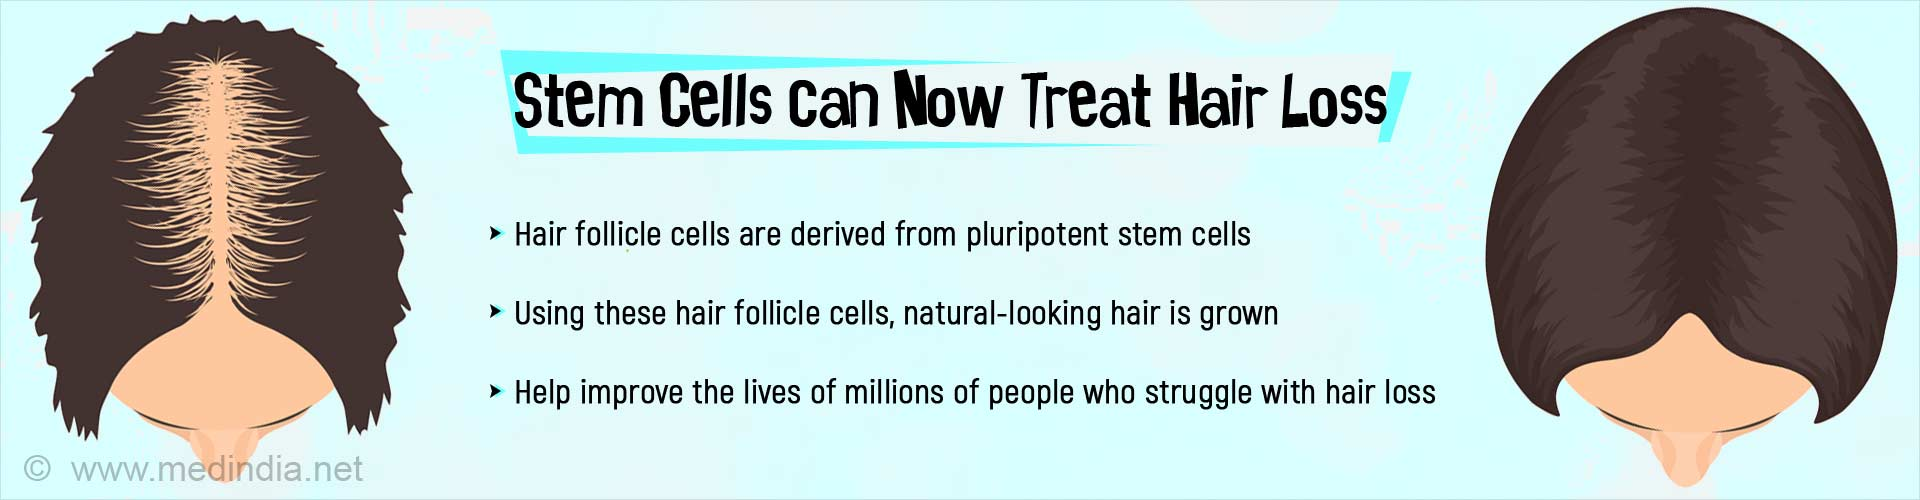 Natural Looking Hair Made From Stem Cells